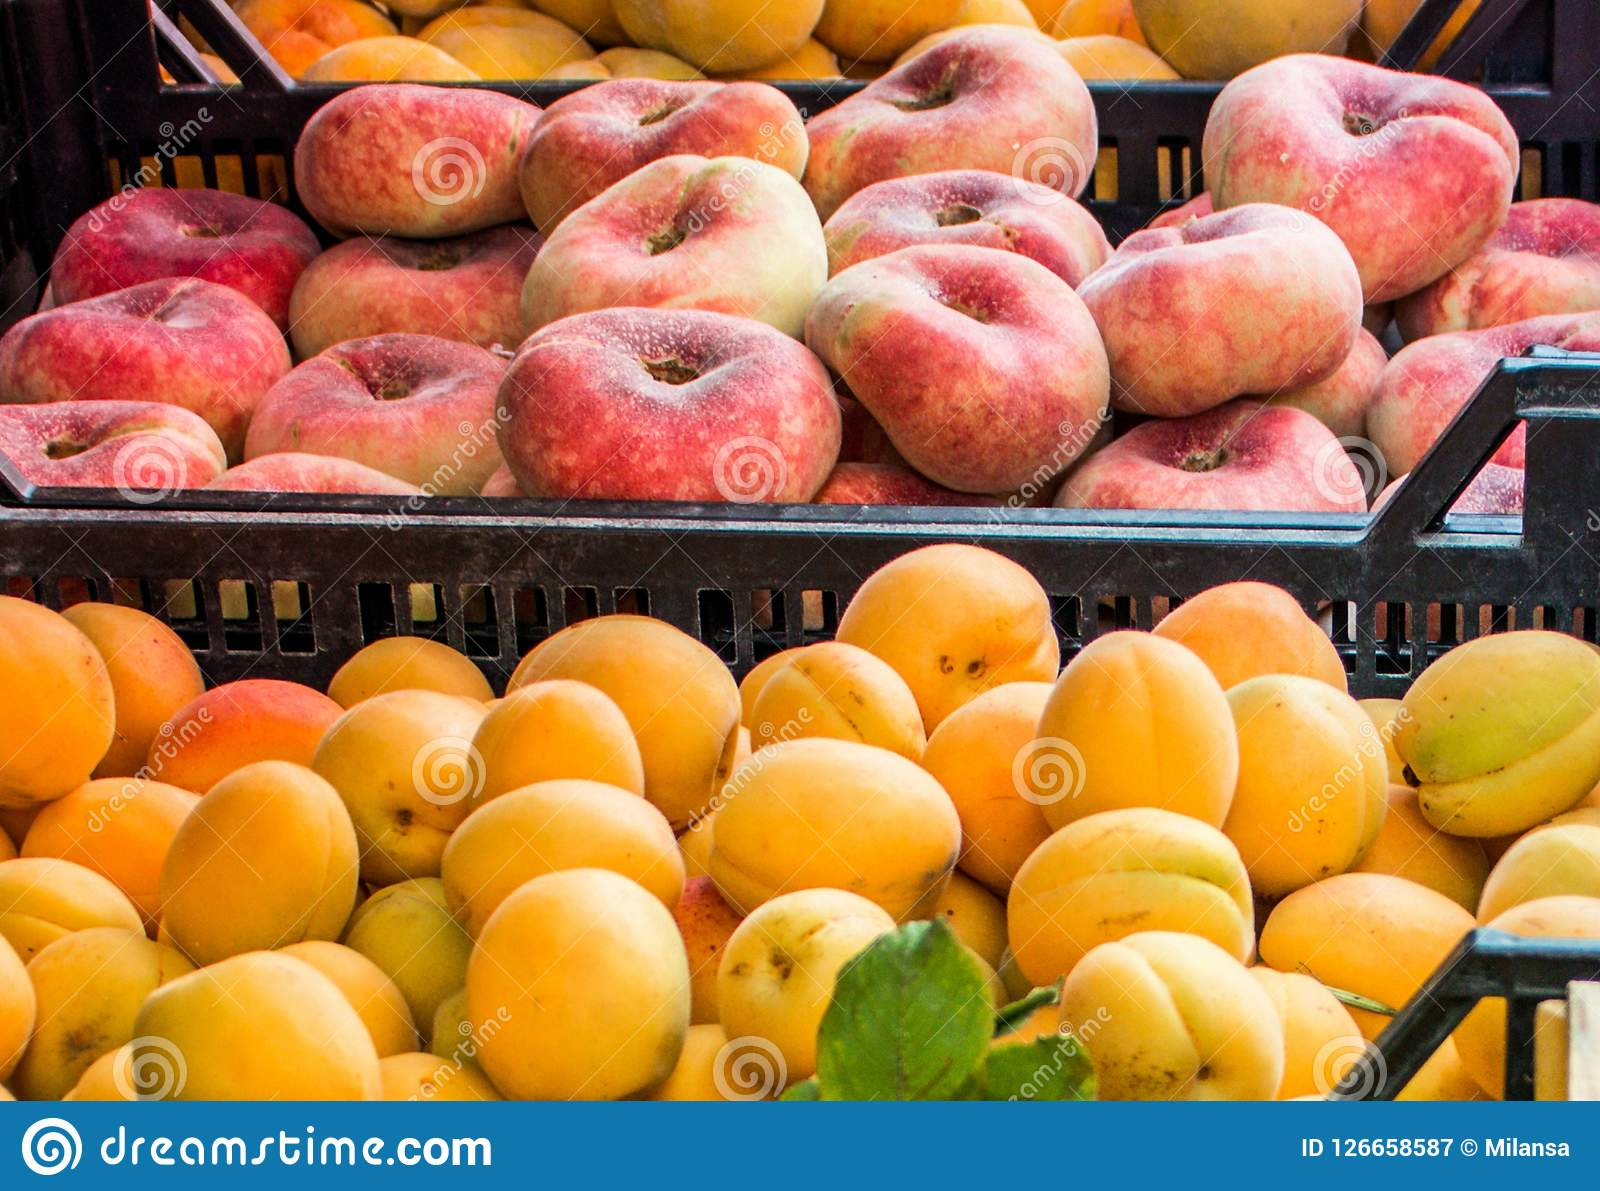 Donut peaches and big apricots in plastic boxes at street fruit market